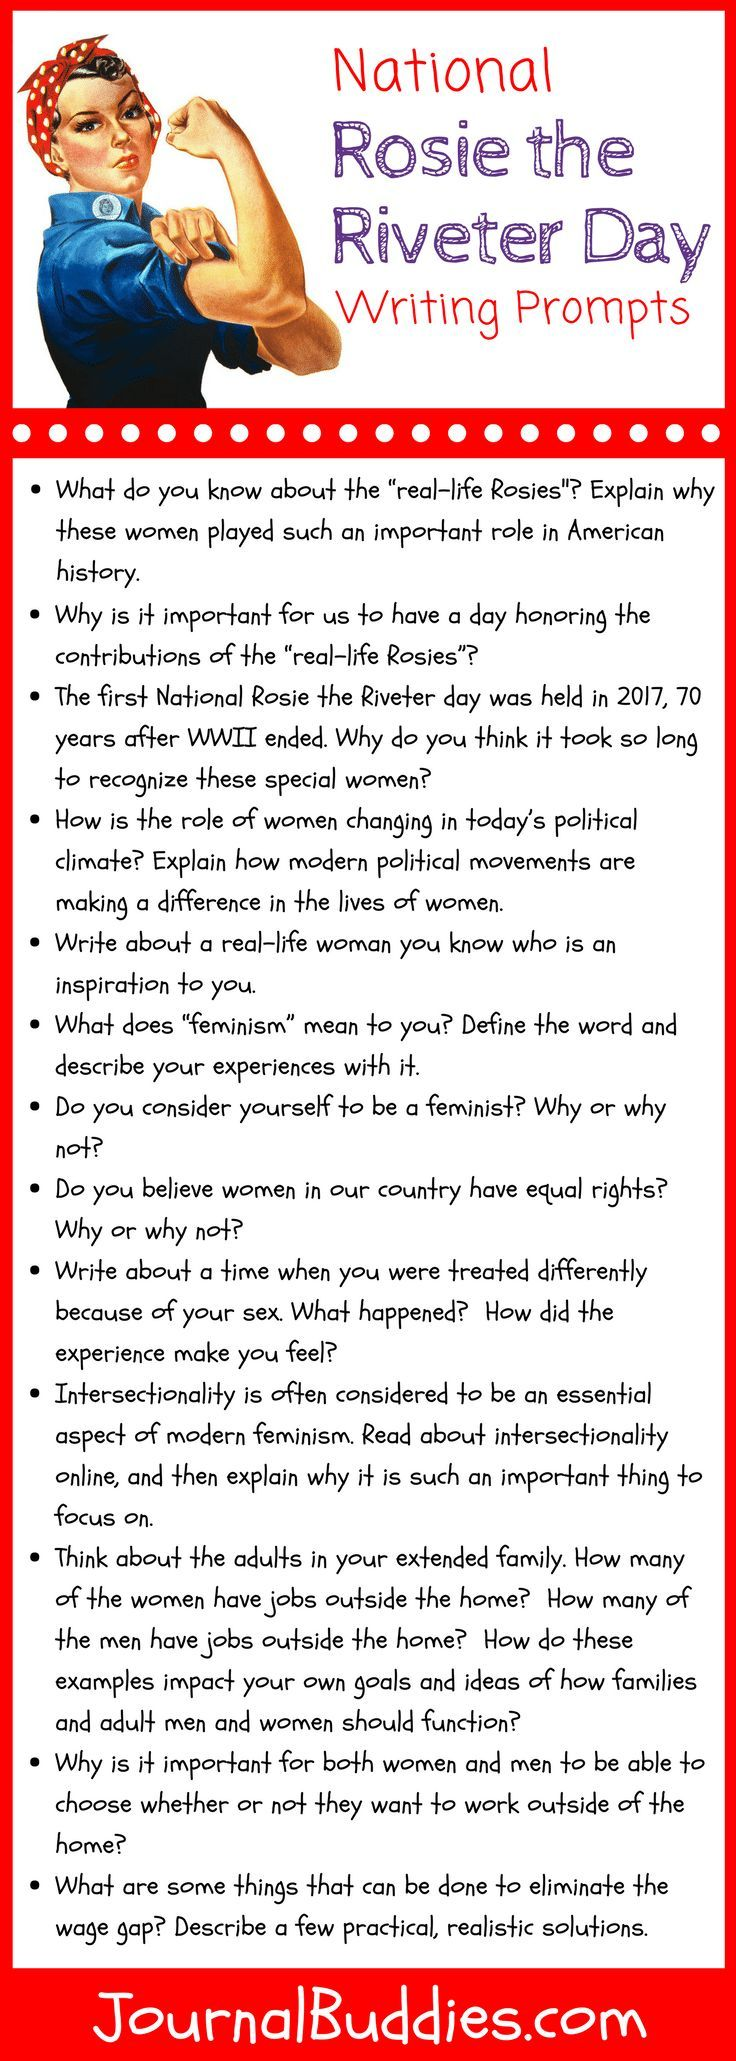 005 National Rosie the Riveter Day Writing Prompts! Writing